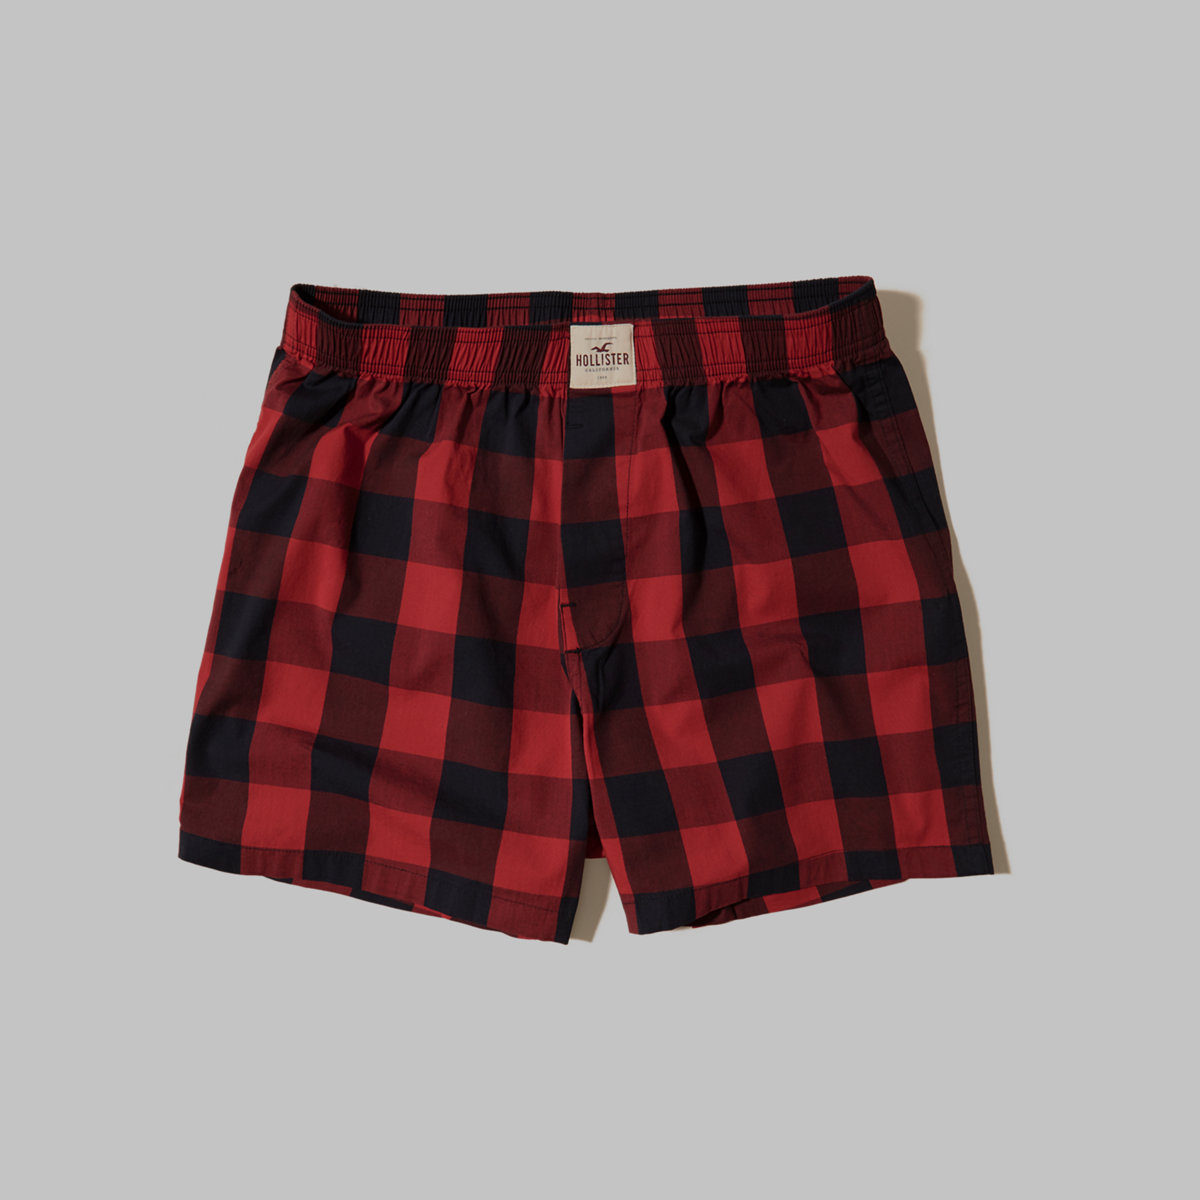 Hollister Plaid Woven Boxers